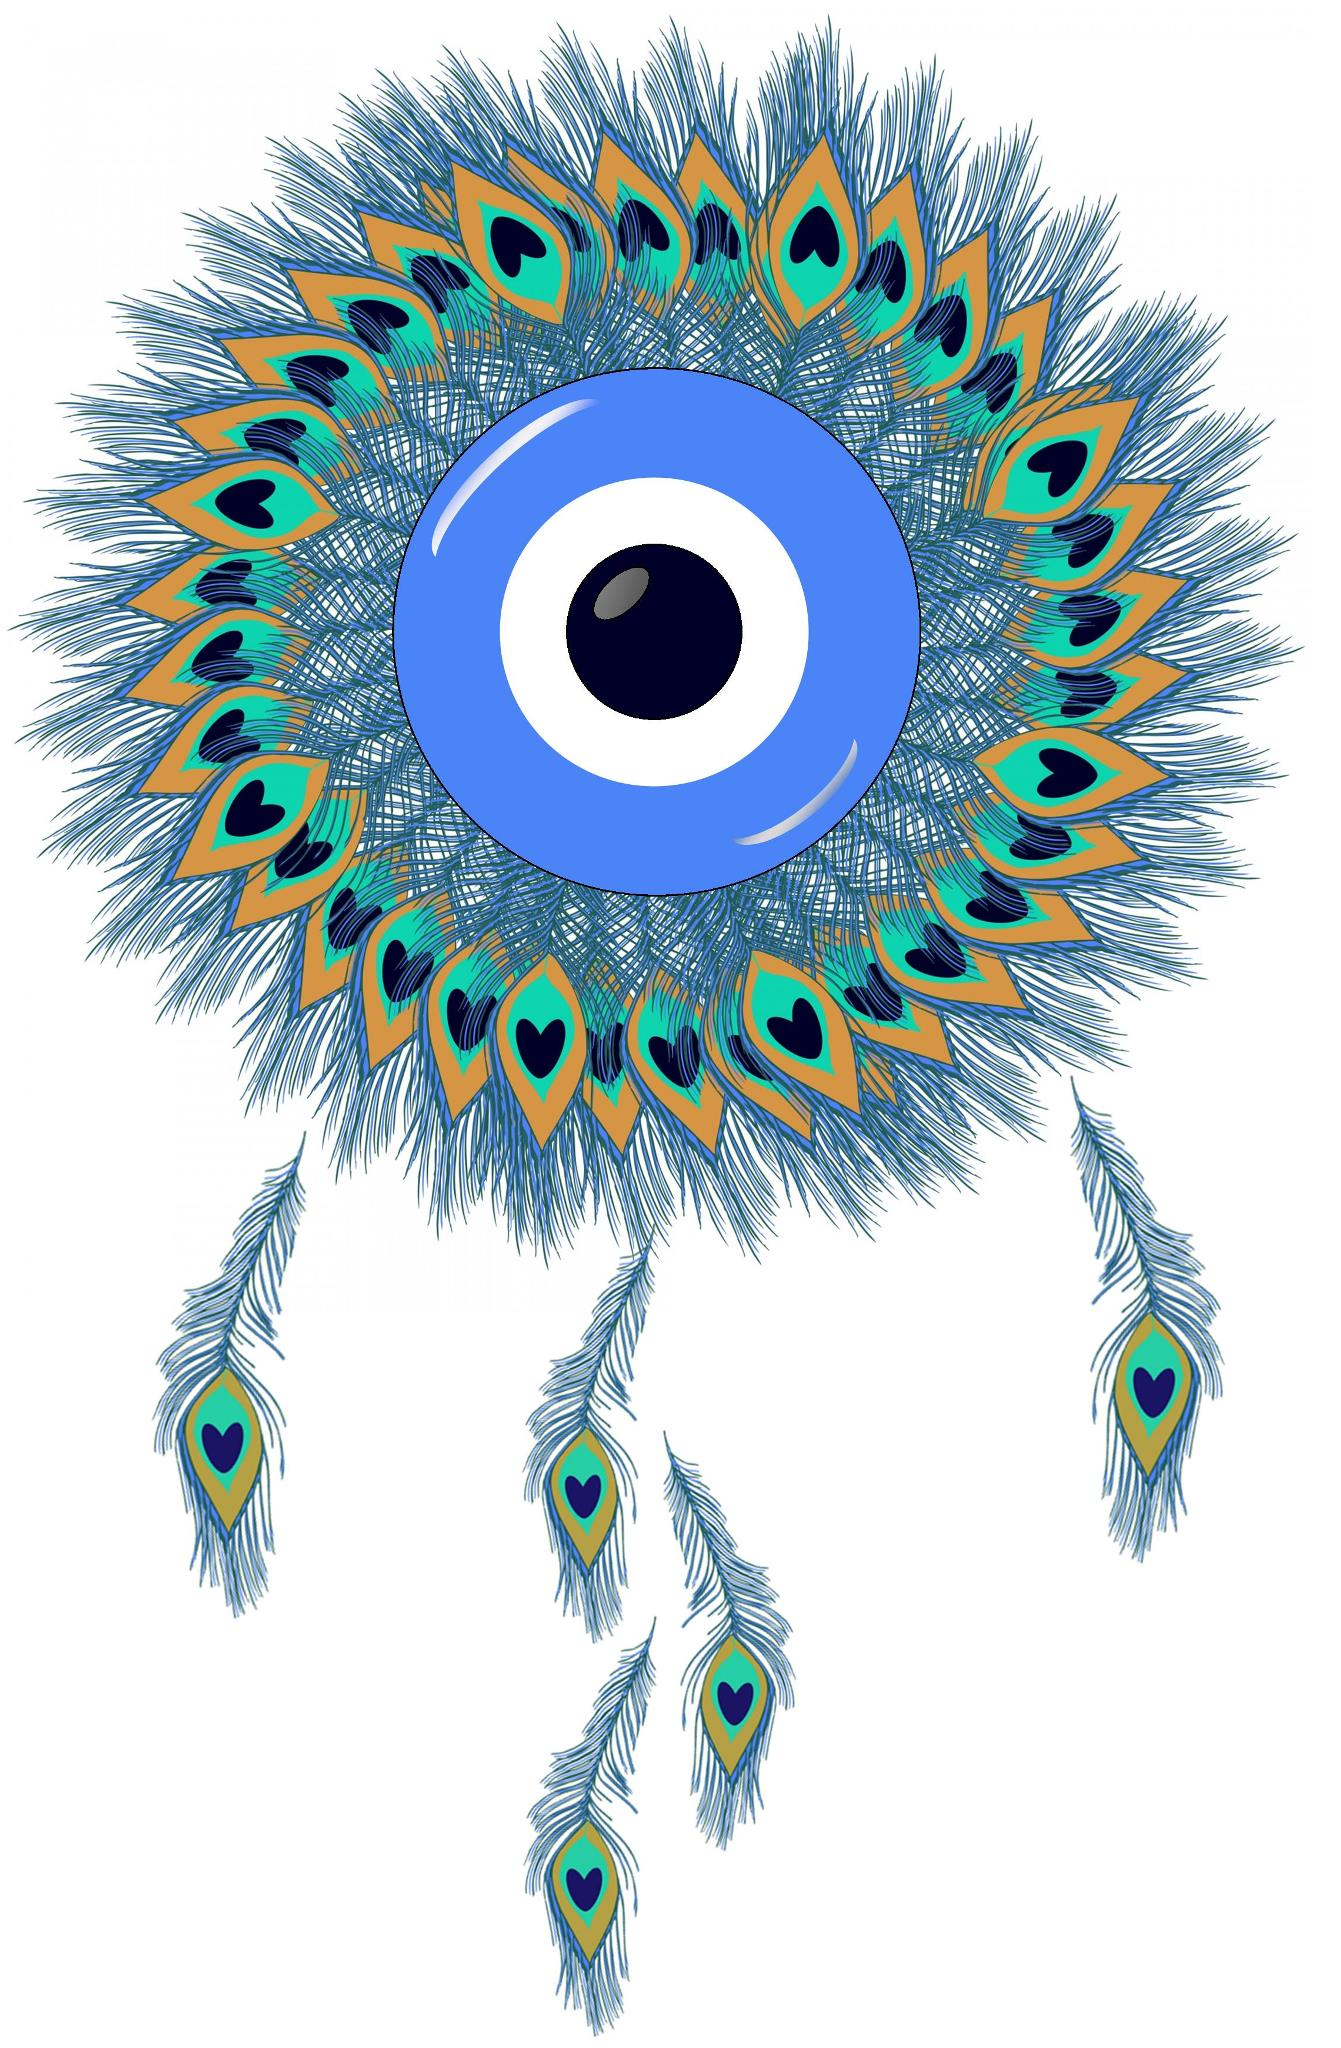 Free, Download, nazar, dream catcher, protection, protective, symbol, evil eye, digital, ward